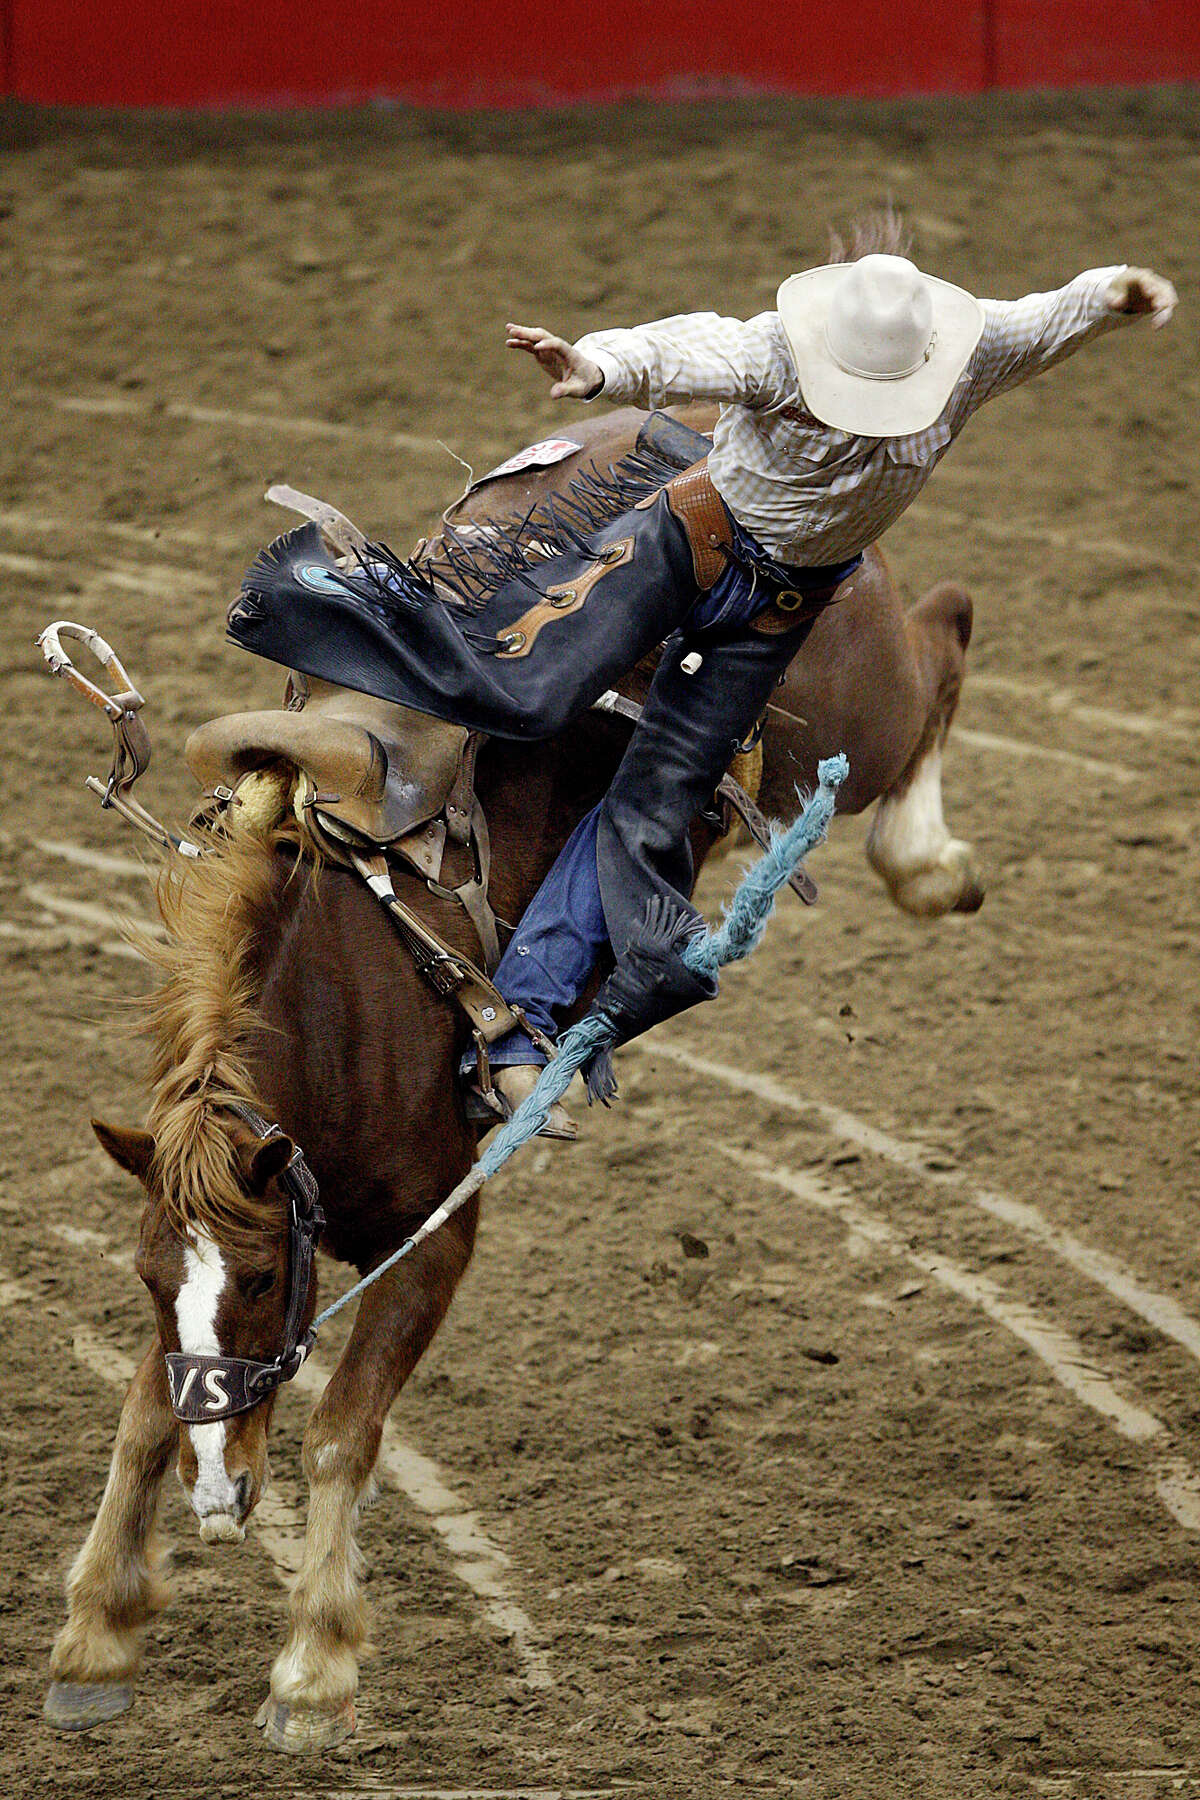 Saddle bronc rider Jace Garrett, of Alliance, NE, jumps off during competition at the San Antonio Stock Show and Rodeo, Sunday, Feb. 6, 2011.